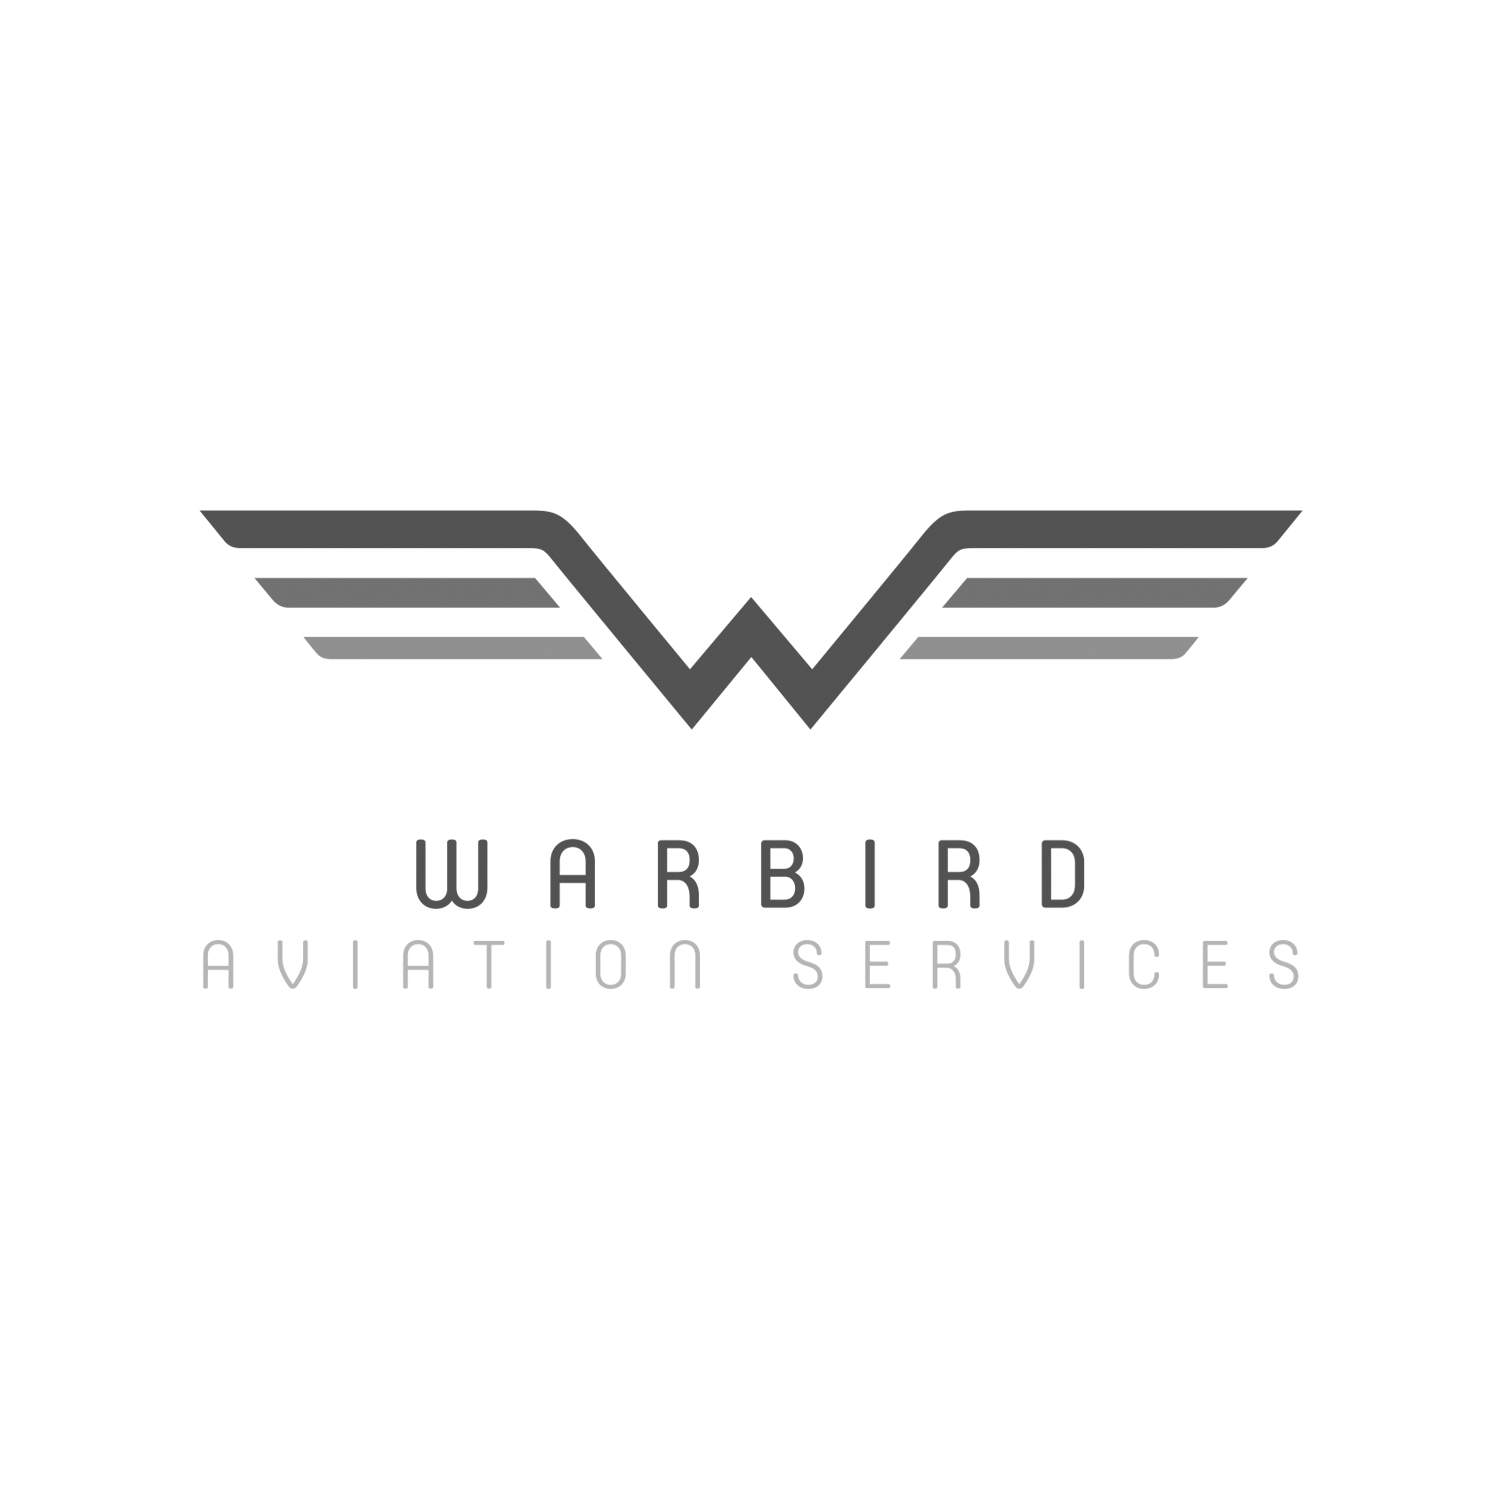 logo design for aviation services company  who build wwii aeroplane spare parts